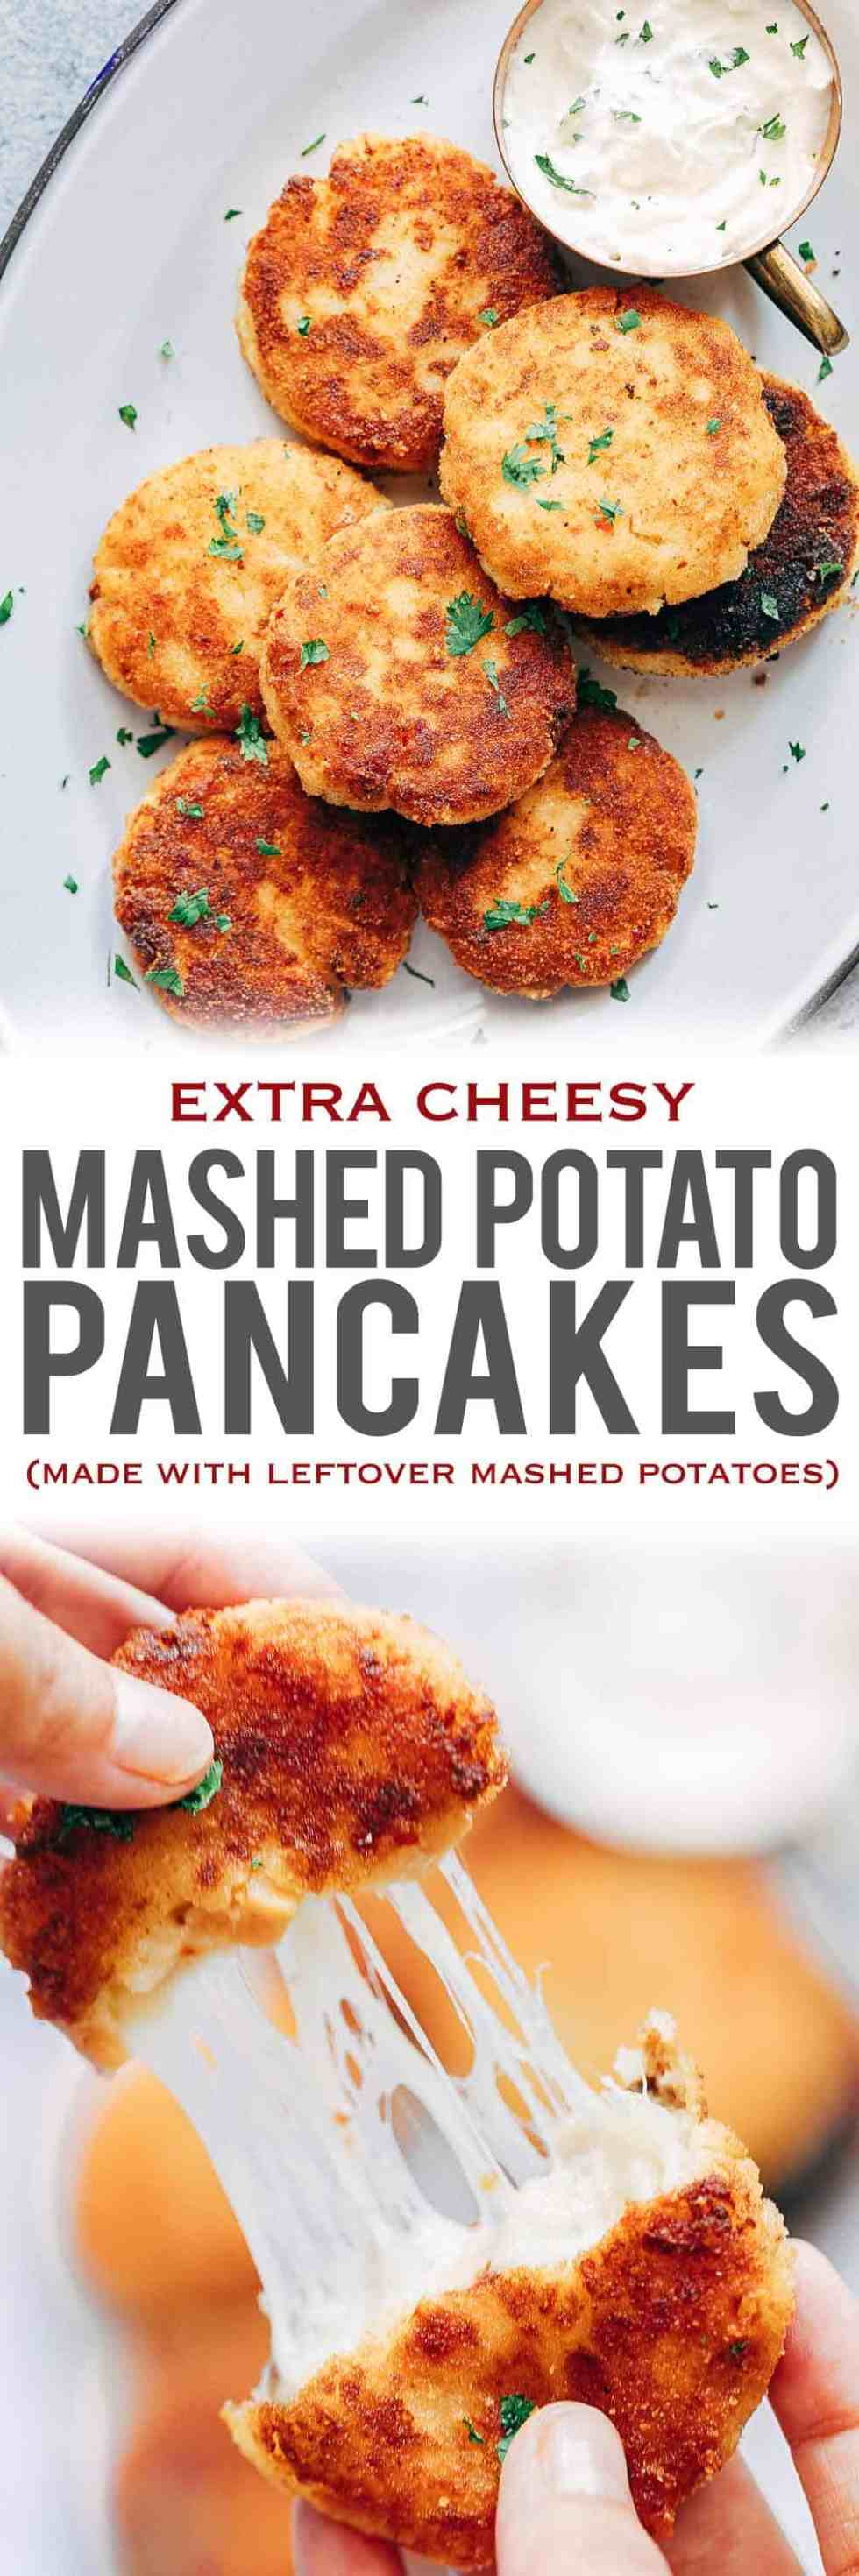 Leftover Mashed Potato Ham Pancakes are the best way to use up extra mashed potatoes after thanksgiving or christmas for a delicious, cheesy appetiser that everyone will go crazy for! These are like patties, cutlets or cheesy cakes and taste amazing served with sour cream. Easy, shallow fried and the best idea!